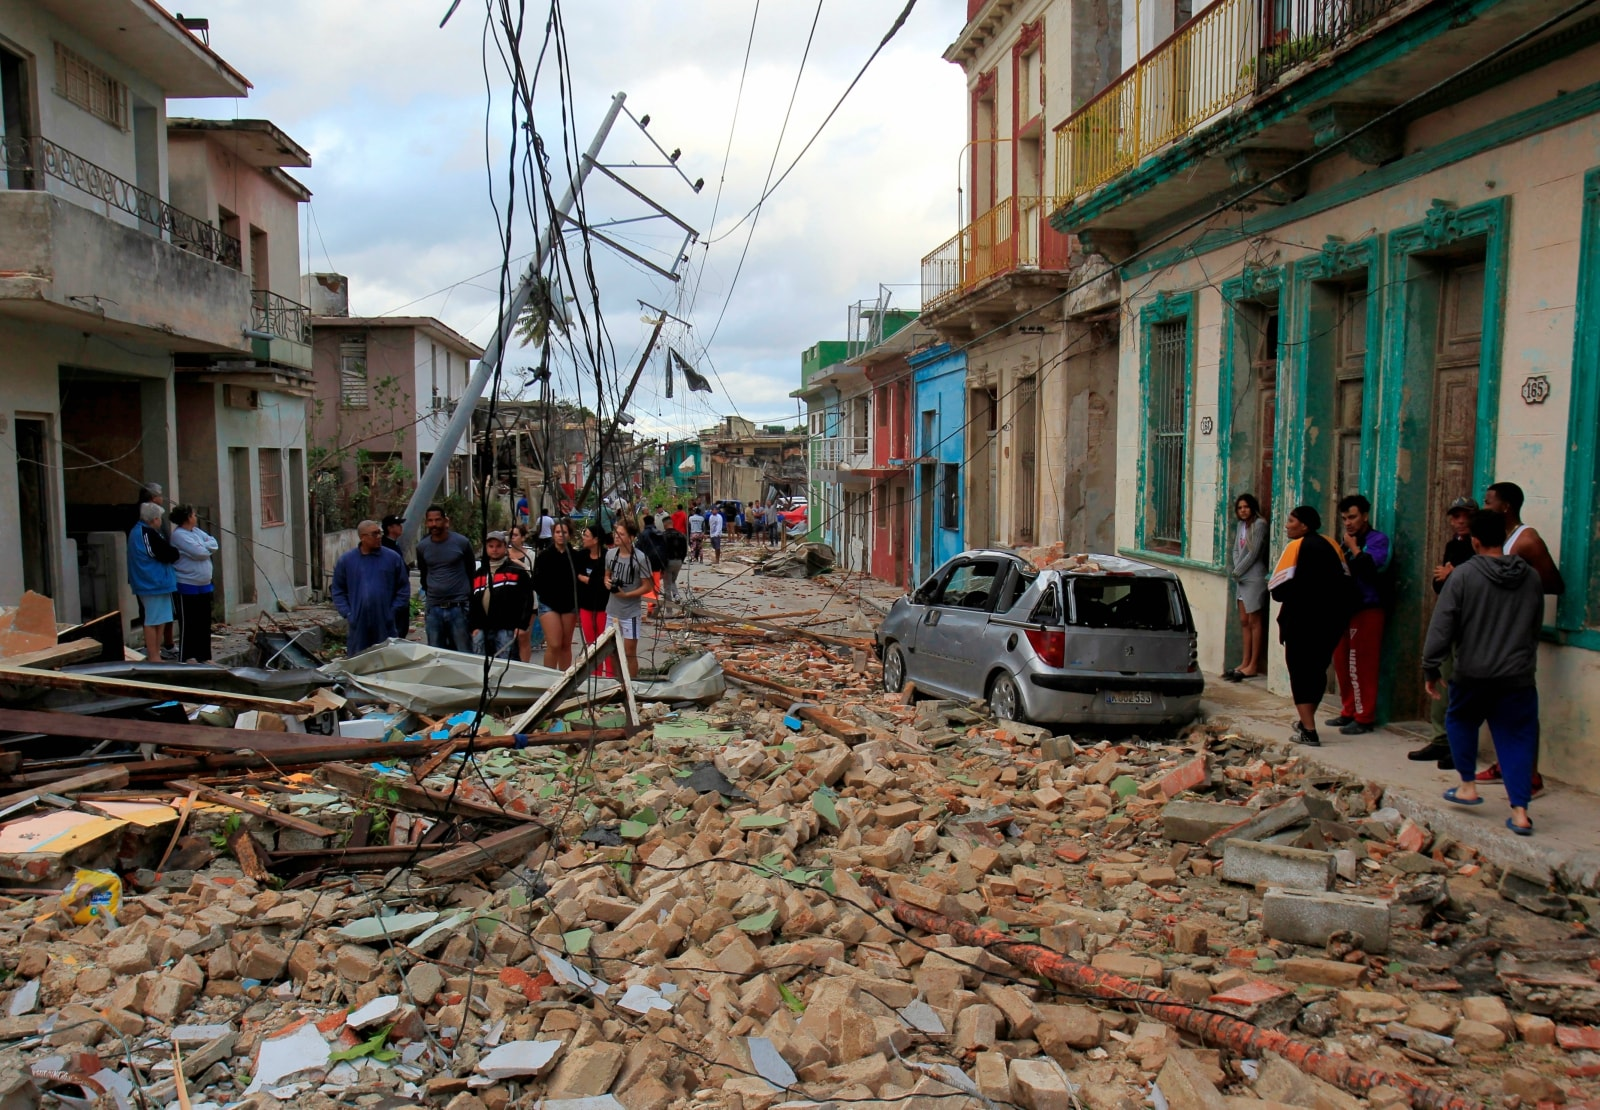 People look on to debris after a tornado ripped through a neighbourhood in Havana, Cuba January 28, 2019. REUTERS/Stringer